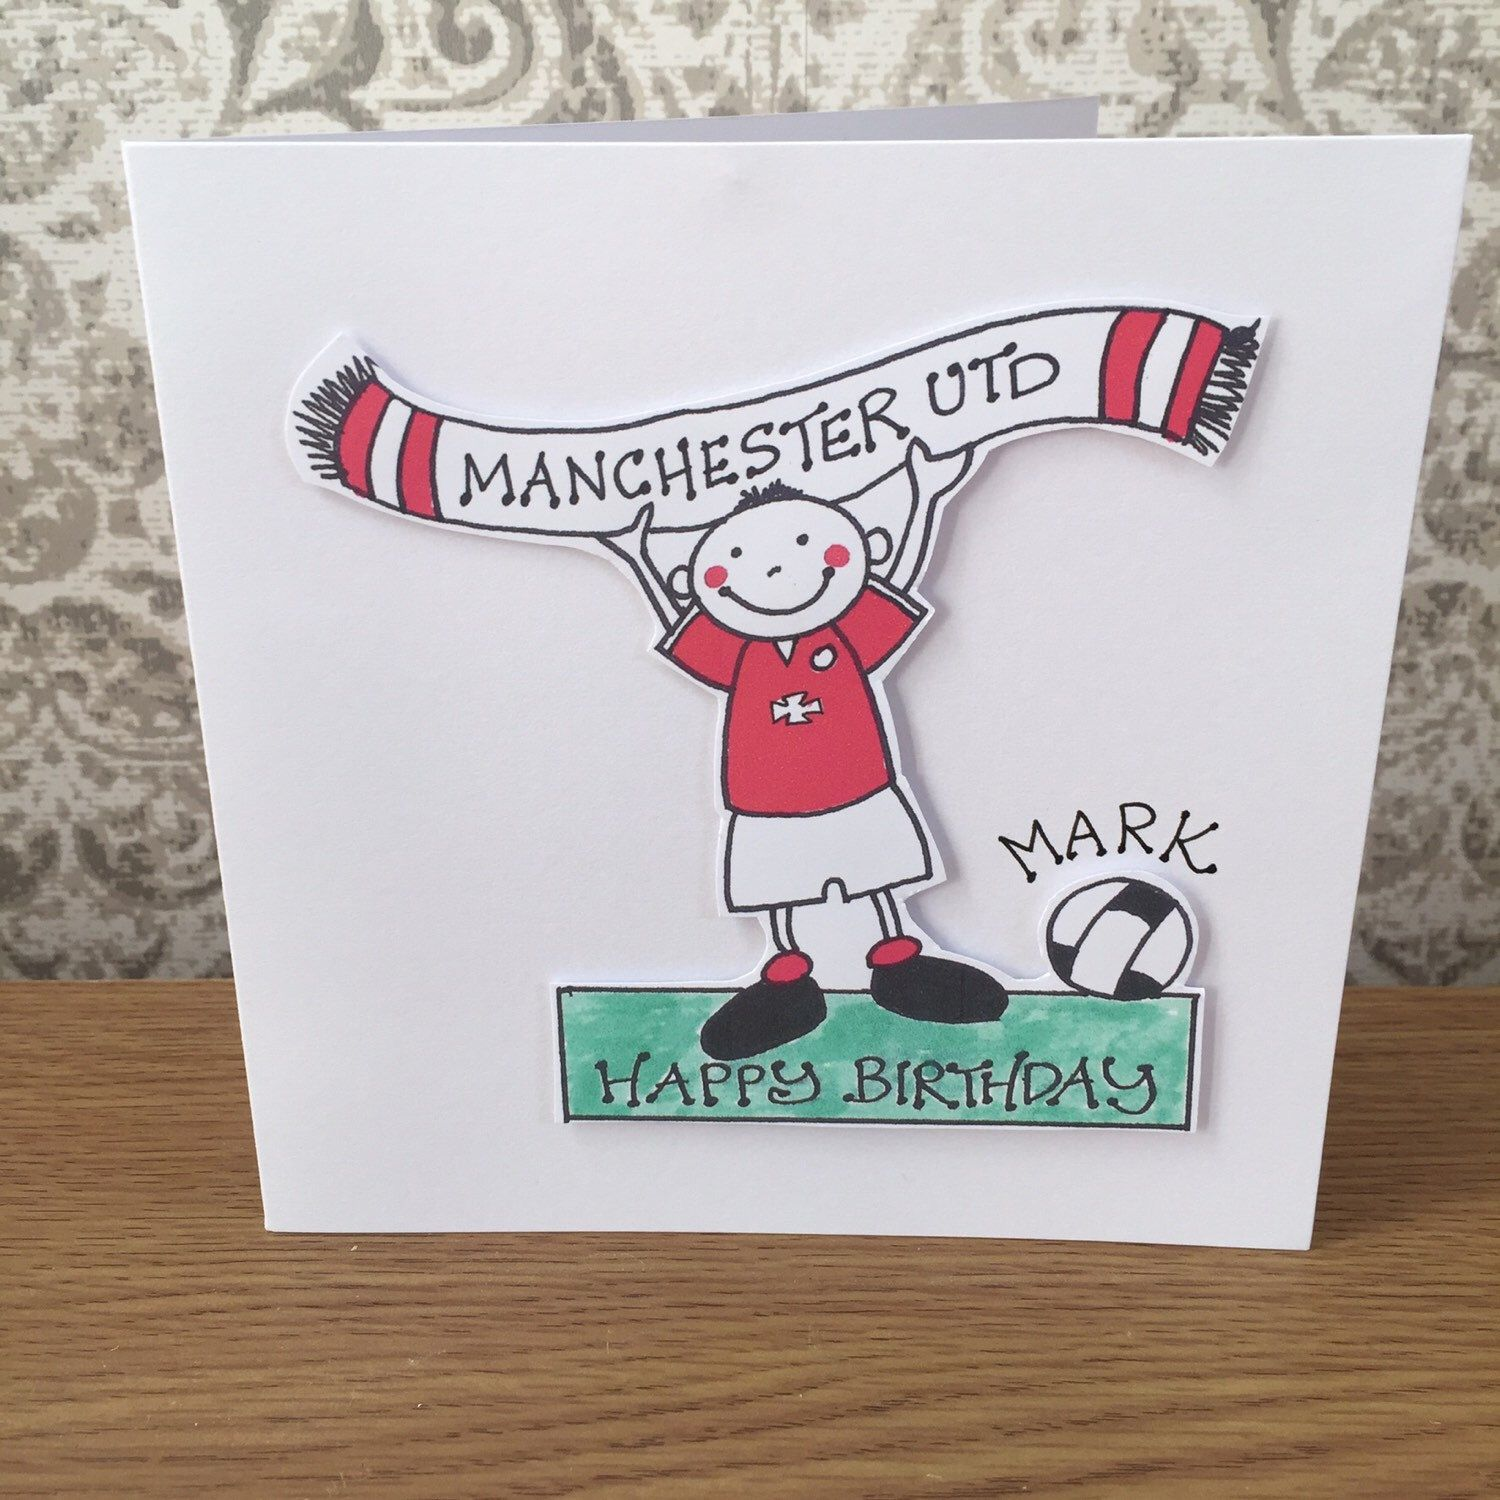 Pin by amanda fairweather on cards pinterest manchester united football cards football team handmade greetings handmade cards manchester united football football birthday birthday greetings birthday cards kristyandbryce Images